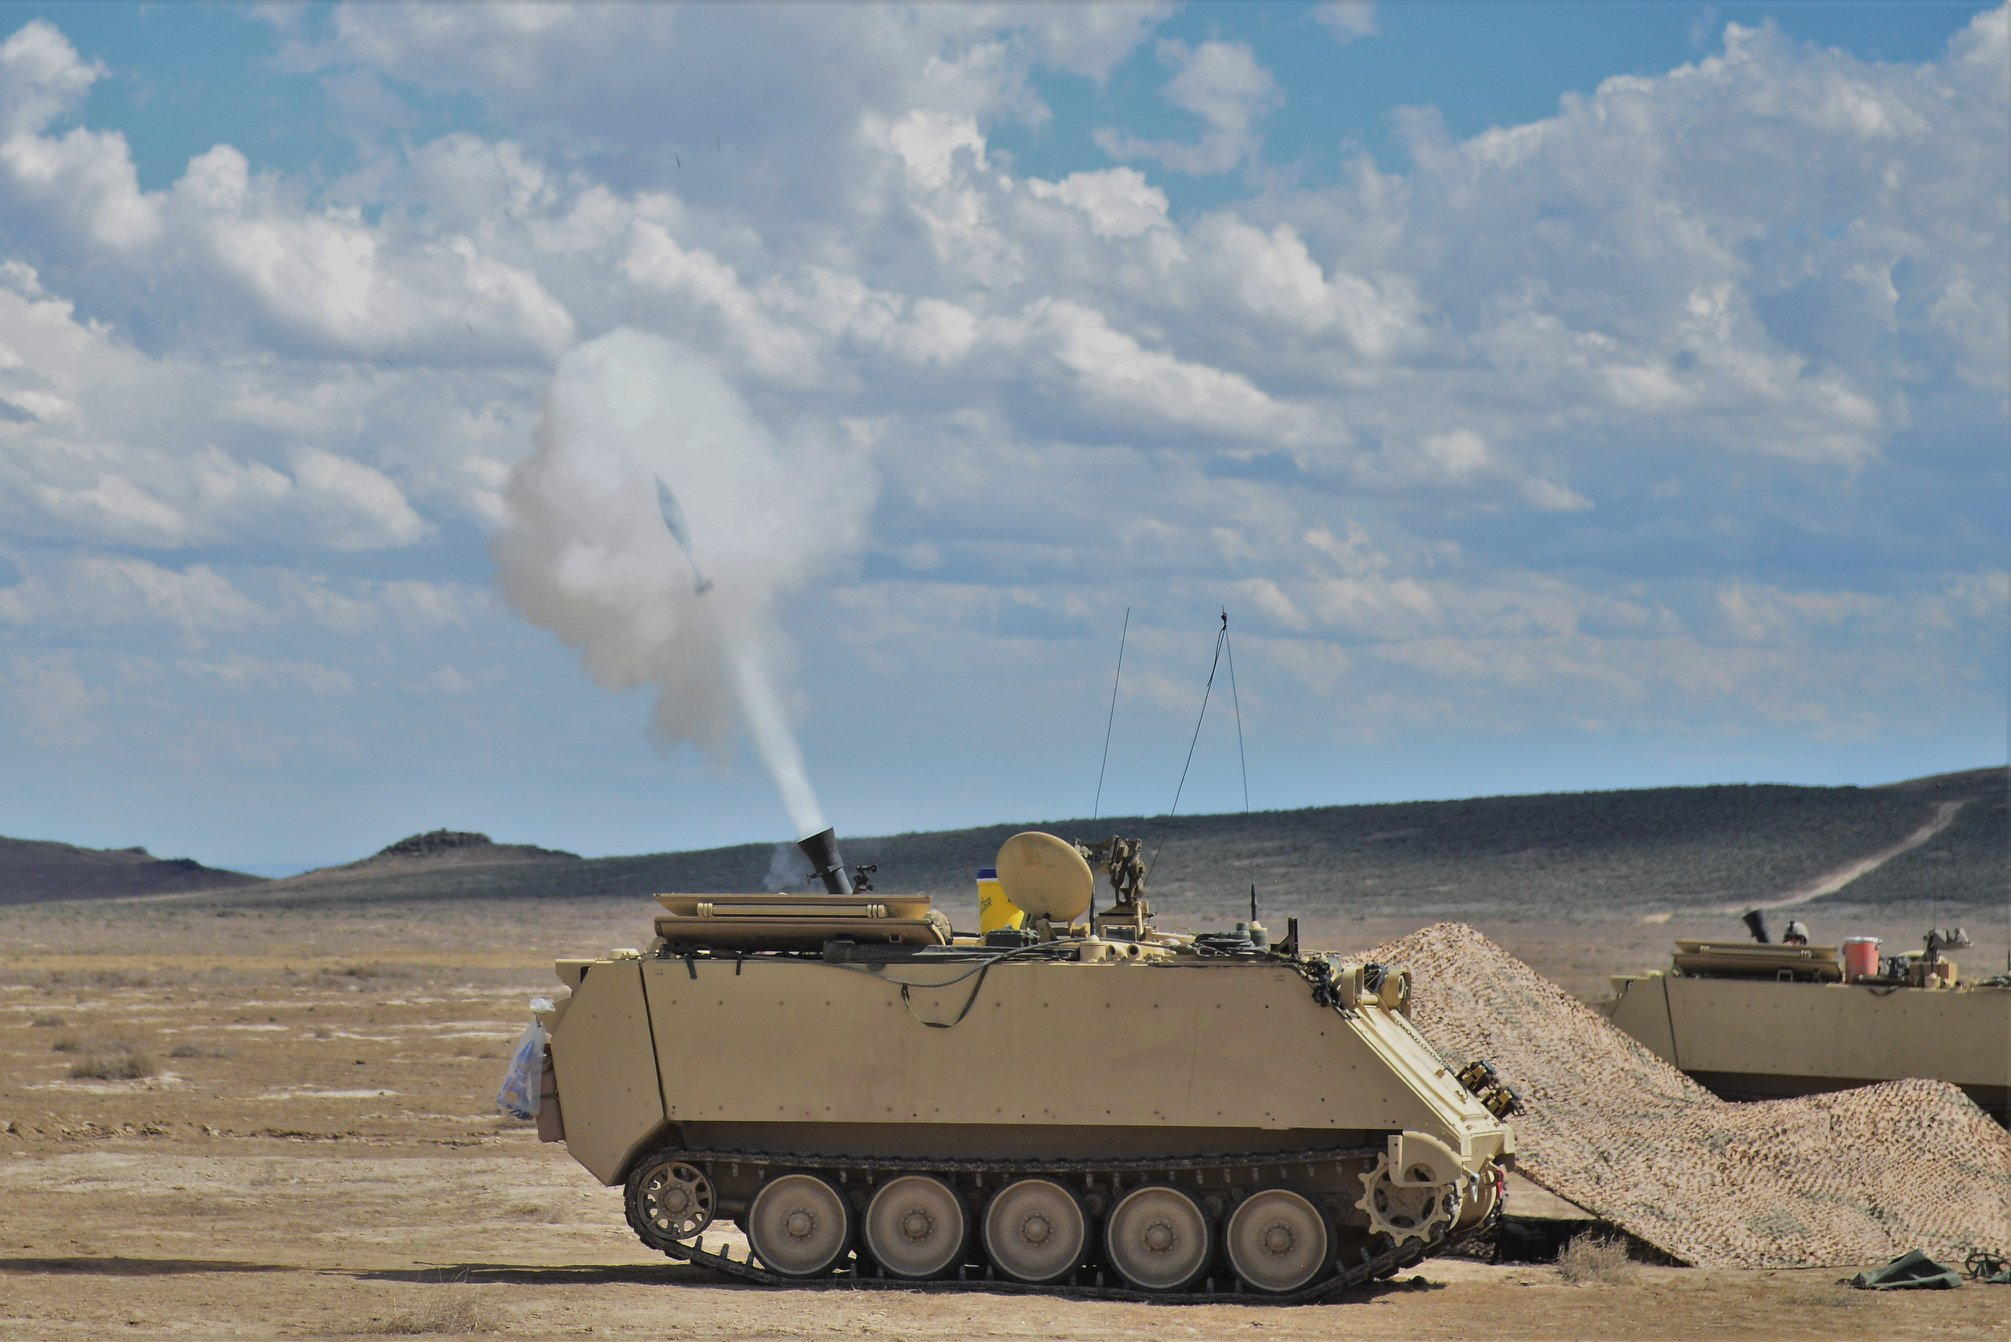 Nevada cavalry on target during ongoing Idaho live-fire training